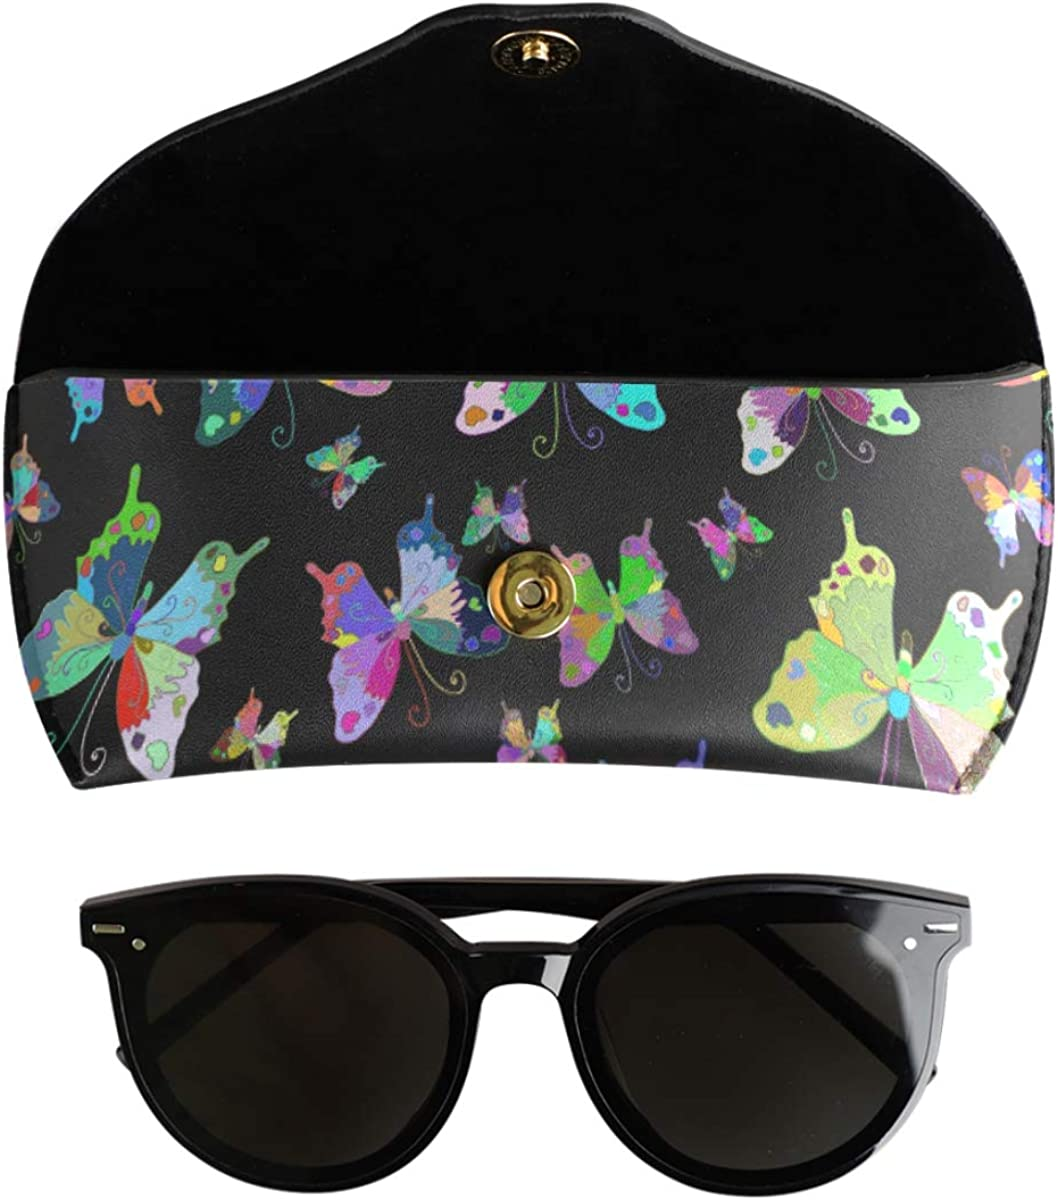 Mysterious Rainbow Butterflies Goggles Bag PU Leather Multiuse School Portable Sunglasses Case Eyeglasses Pouch